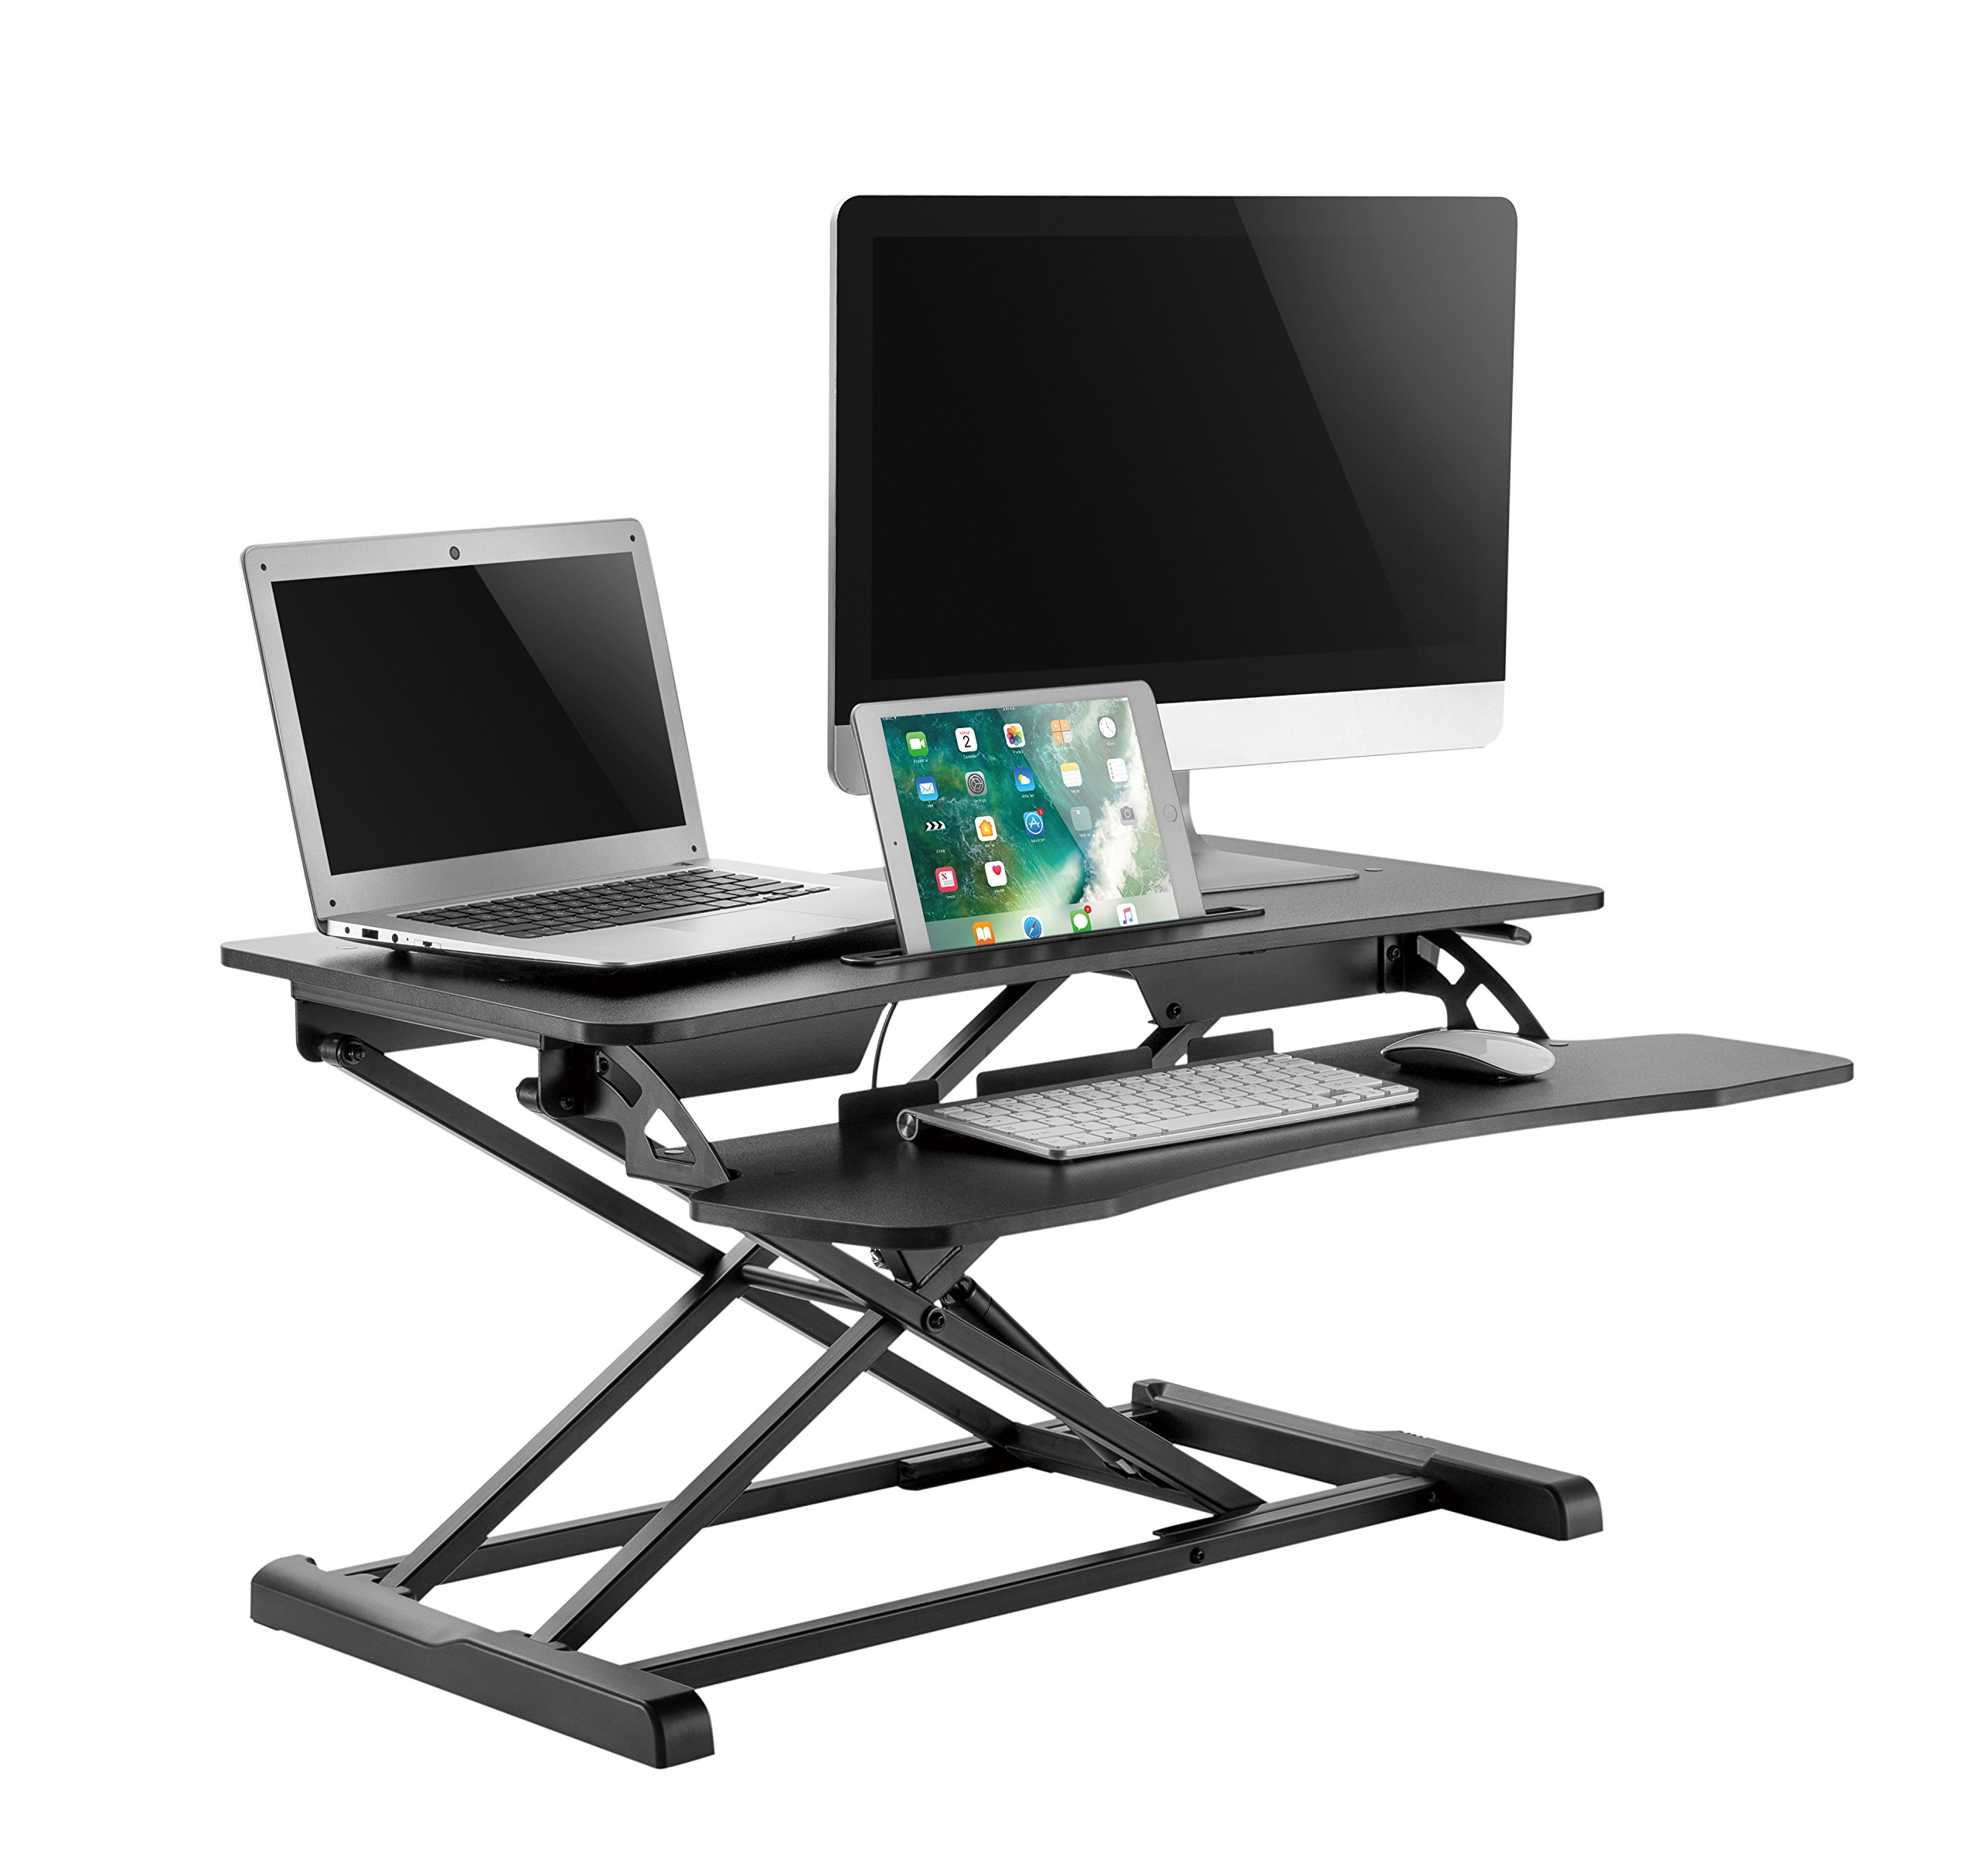 Elitech Sit and Stand Desk Converter with retractable keyboard tray – 37'' inches  height adjustable standing desk converter that serve as  a desk riser for dual monitor set up and tablet.